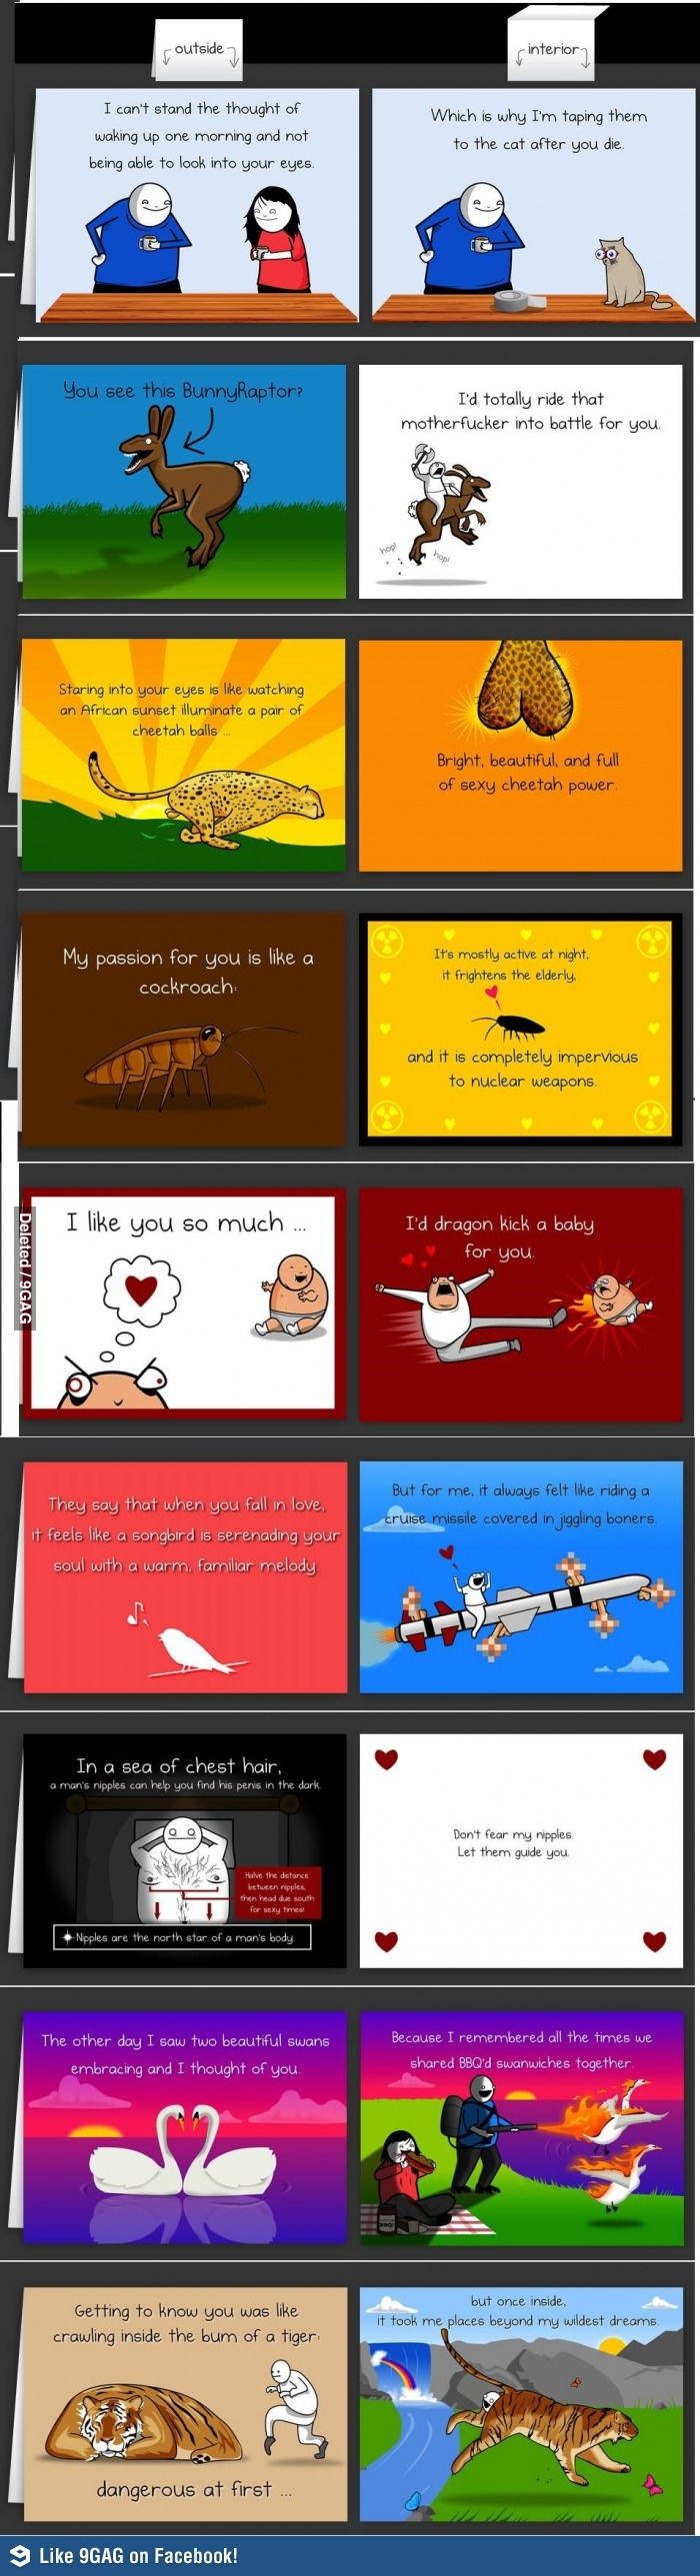 valentine's day card 9gag